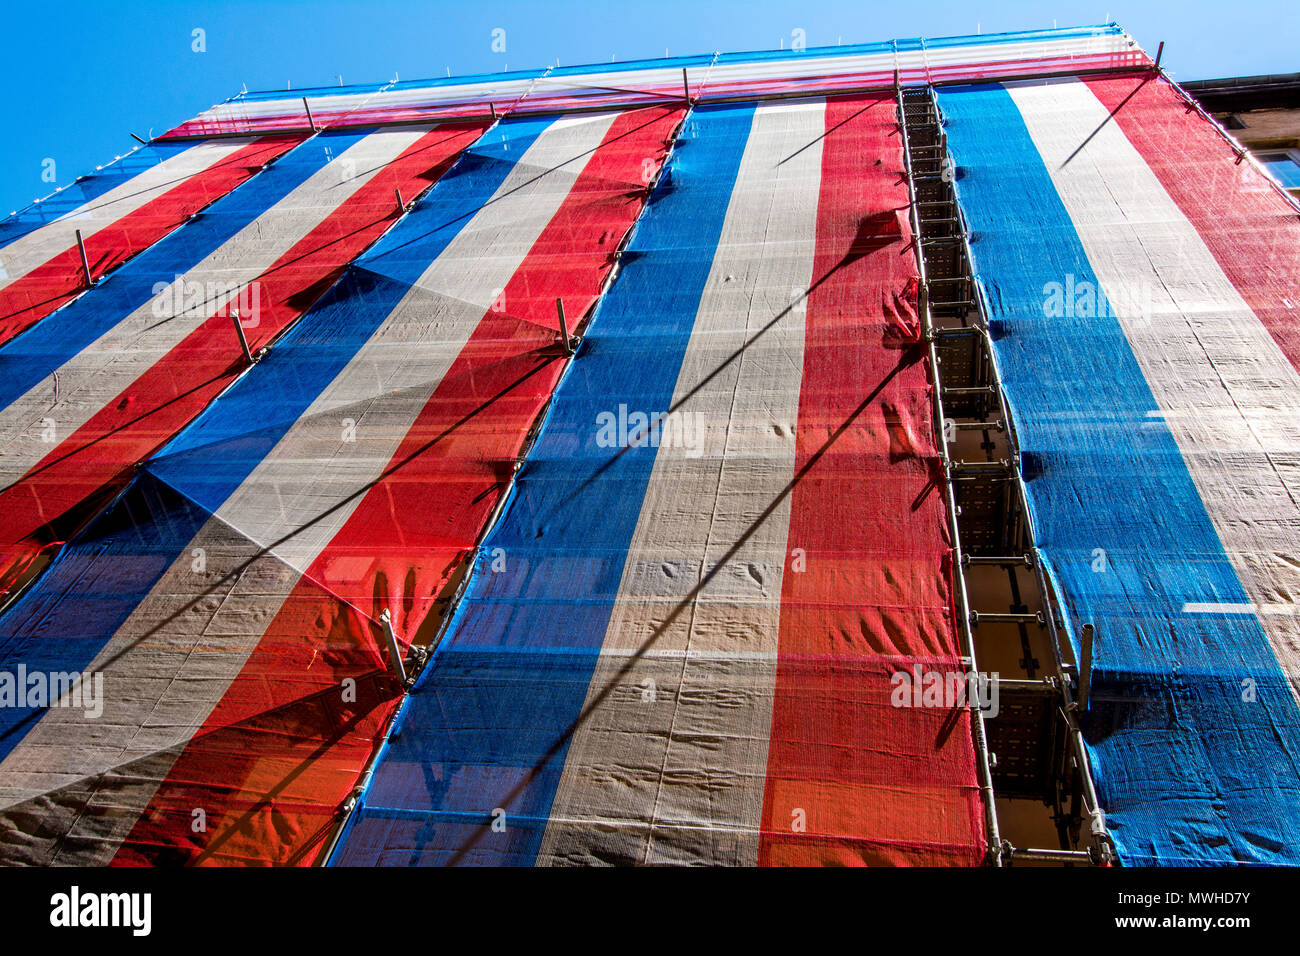 Color of French flag on a scaffolding. France - Stock Image